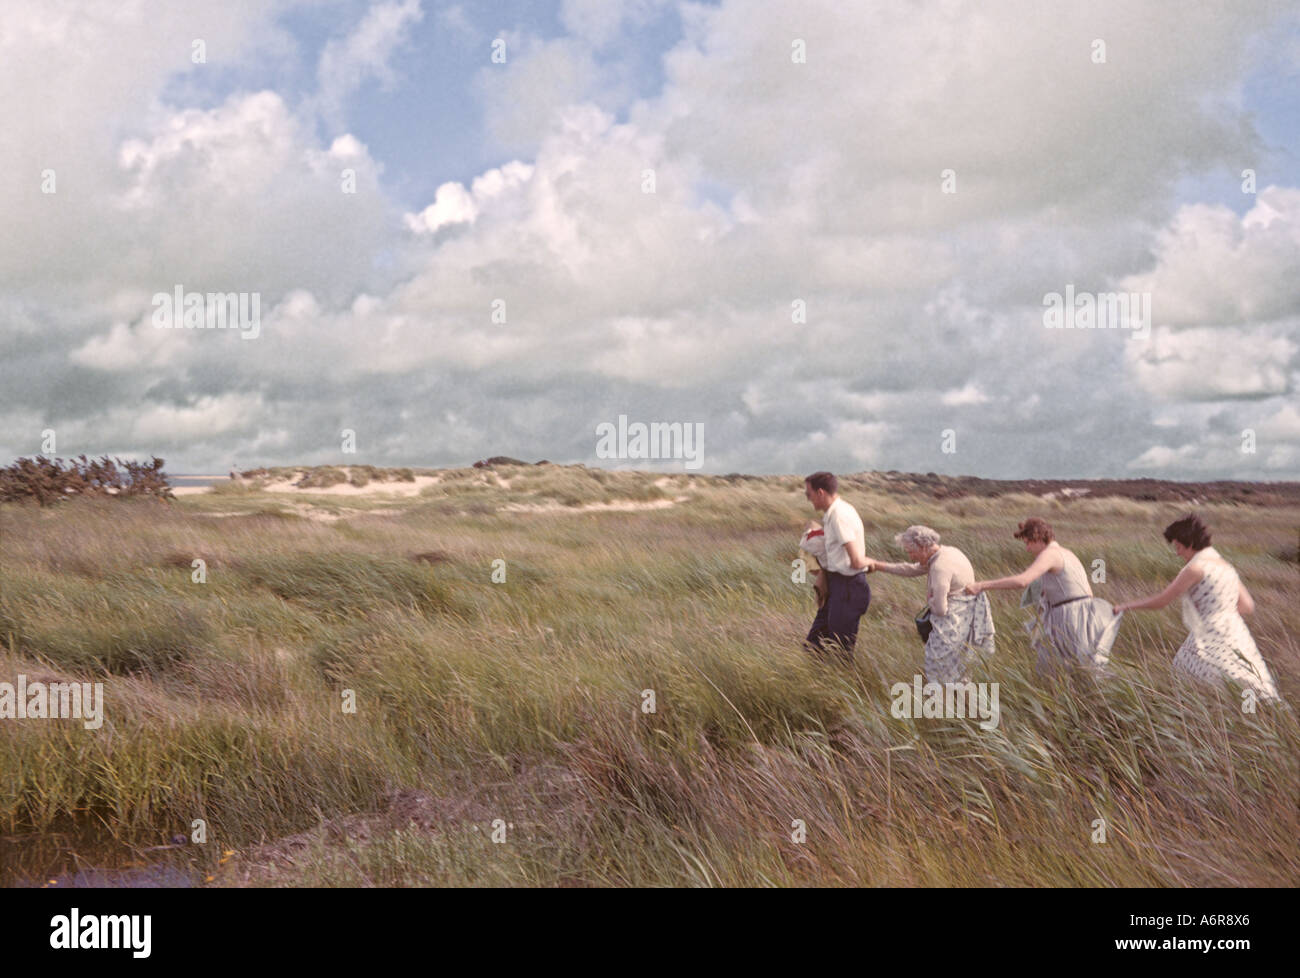 'Man and three women walking 'single file' across grassy marsh,^1960, Sandbanks, Poole, Dorset' - Stock Image